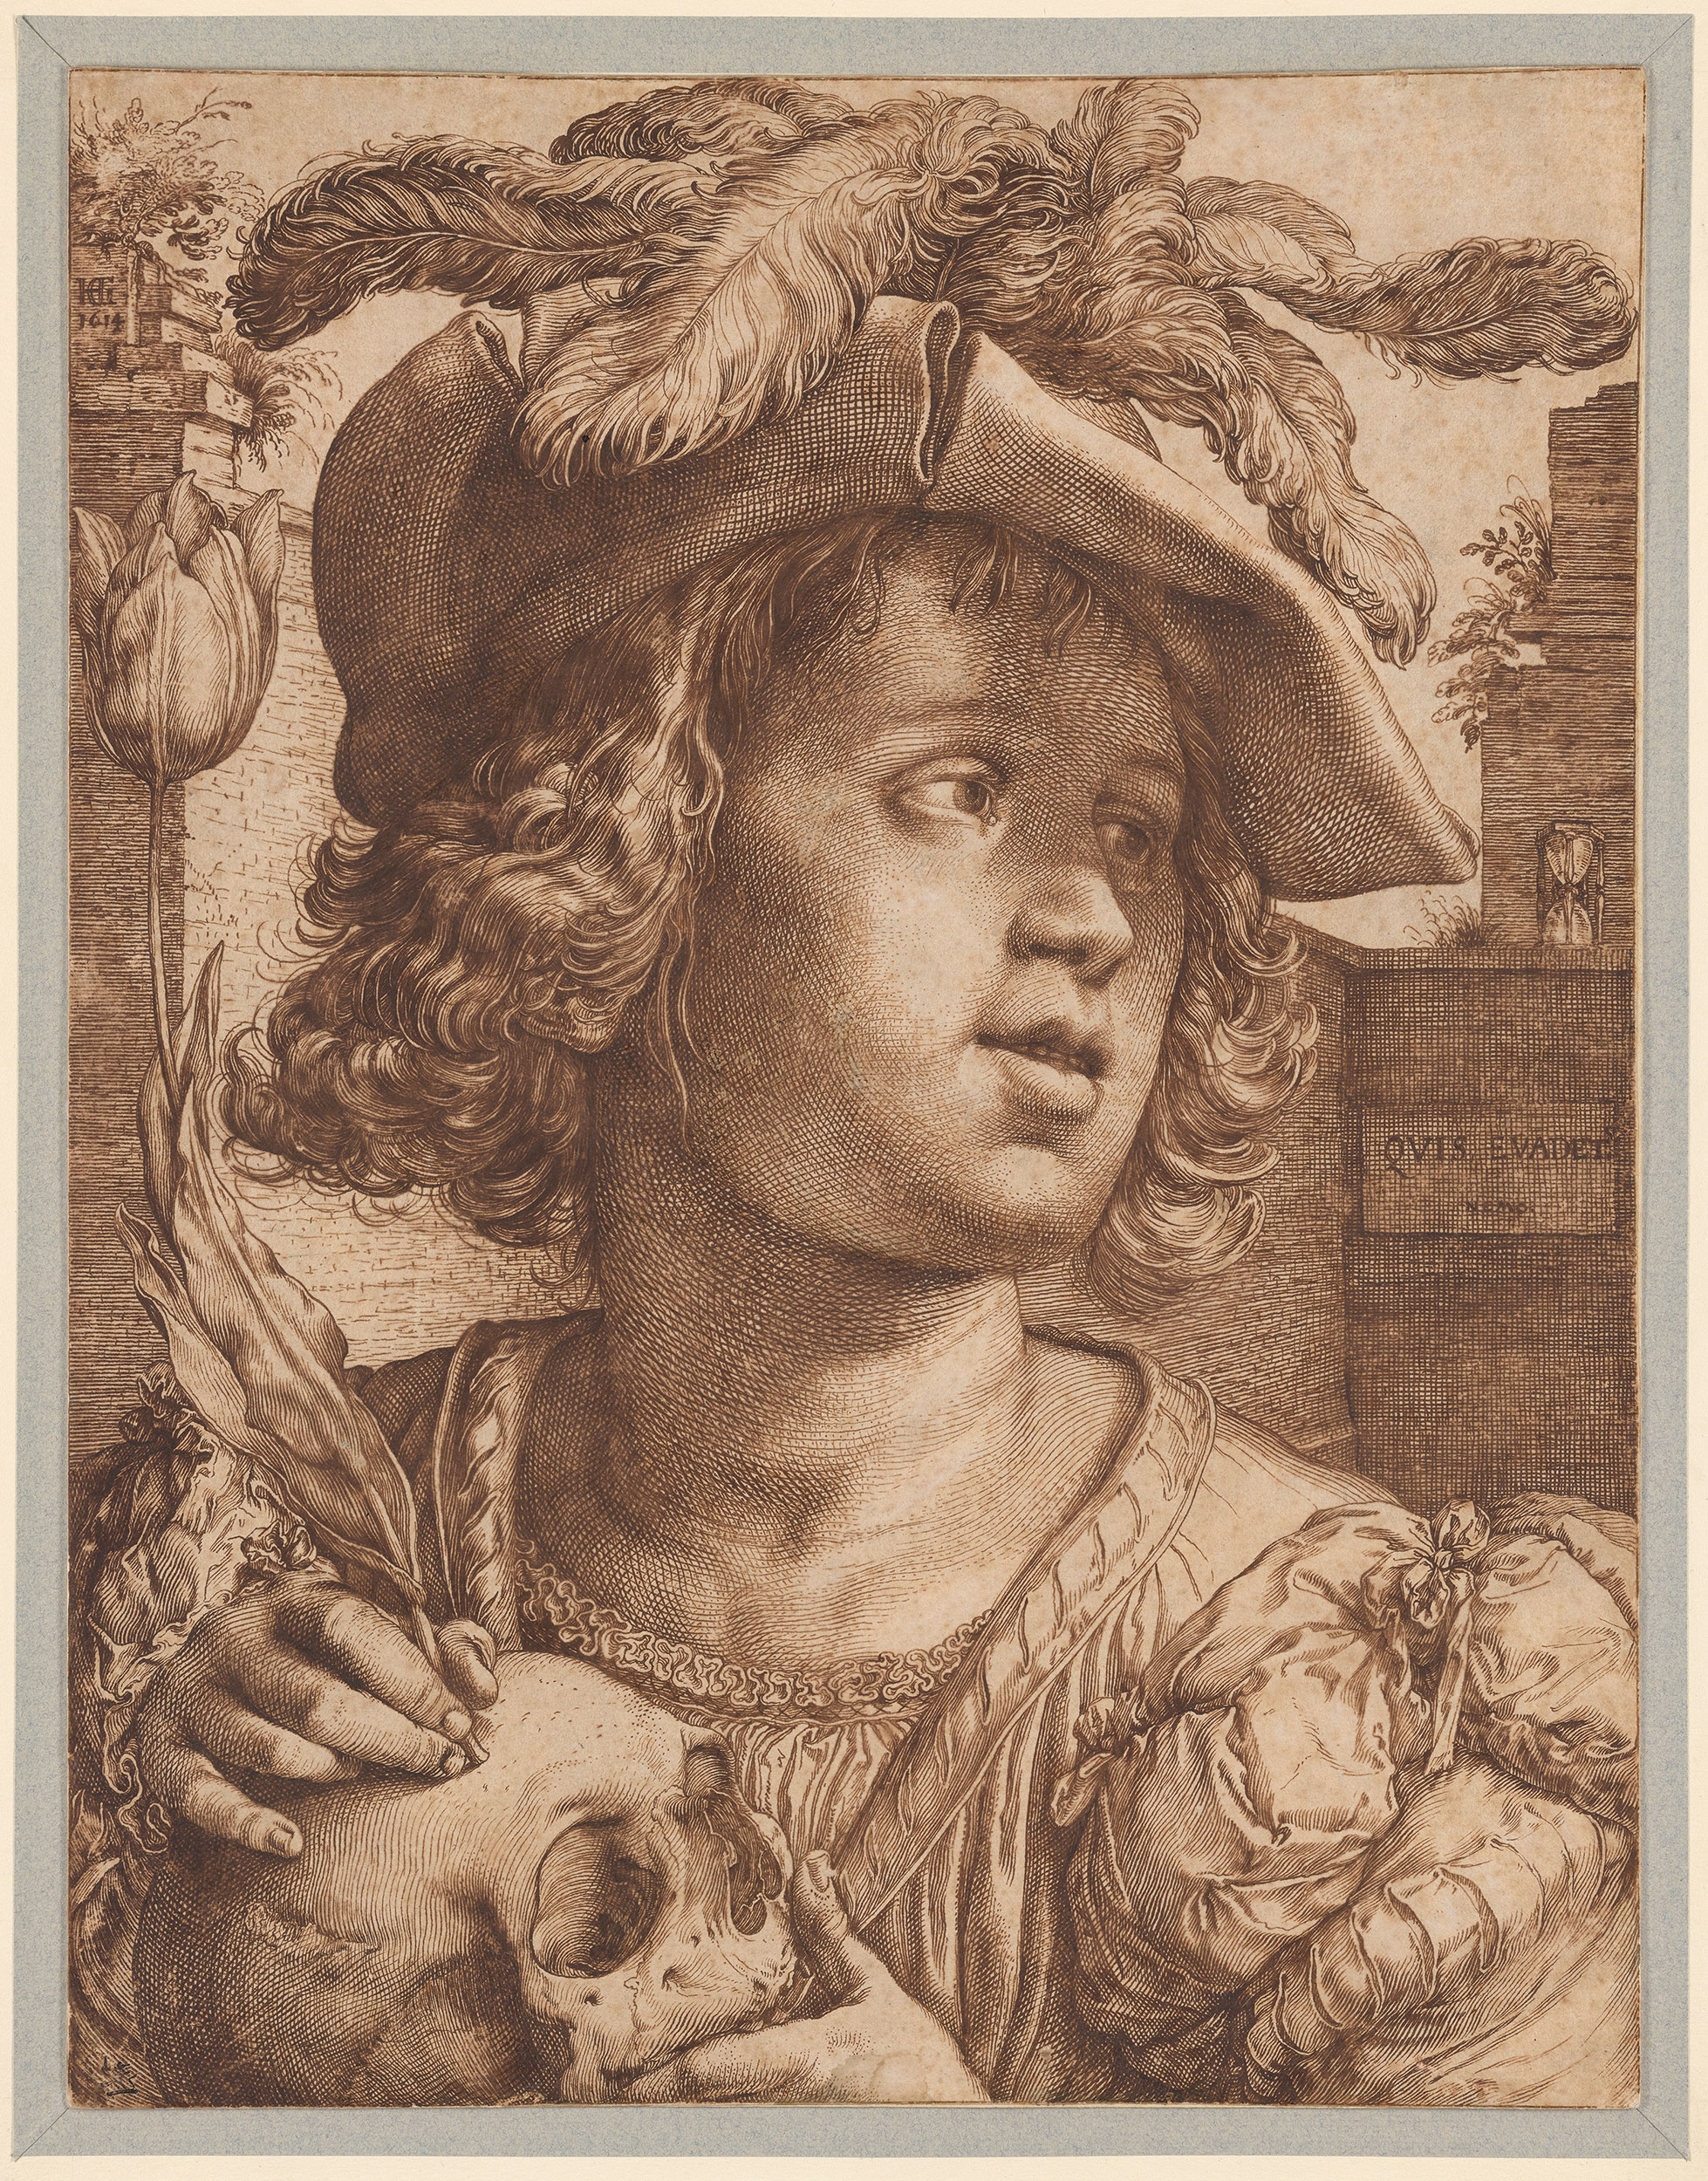 Hendrik Goltzius Young Man Holding A Skull And A Tulip Drawings Online The Morgan Library